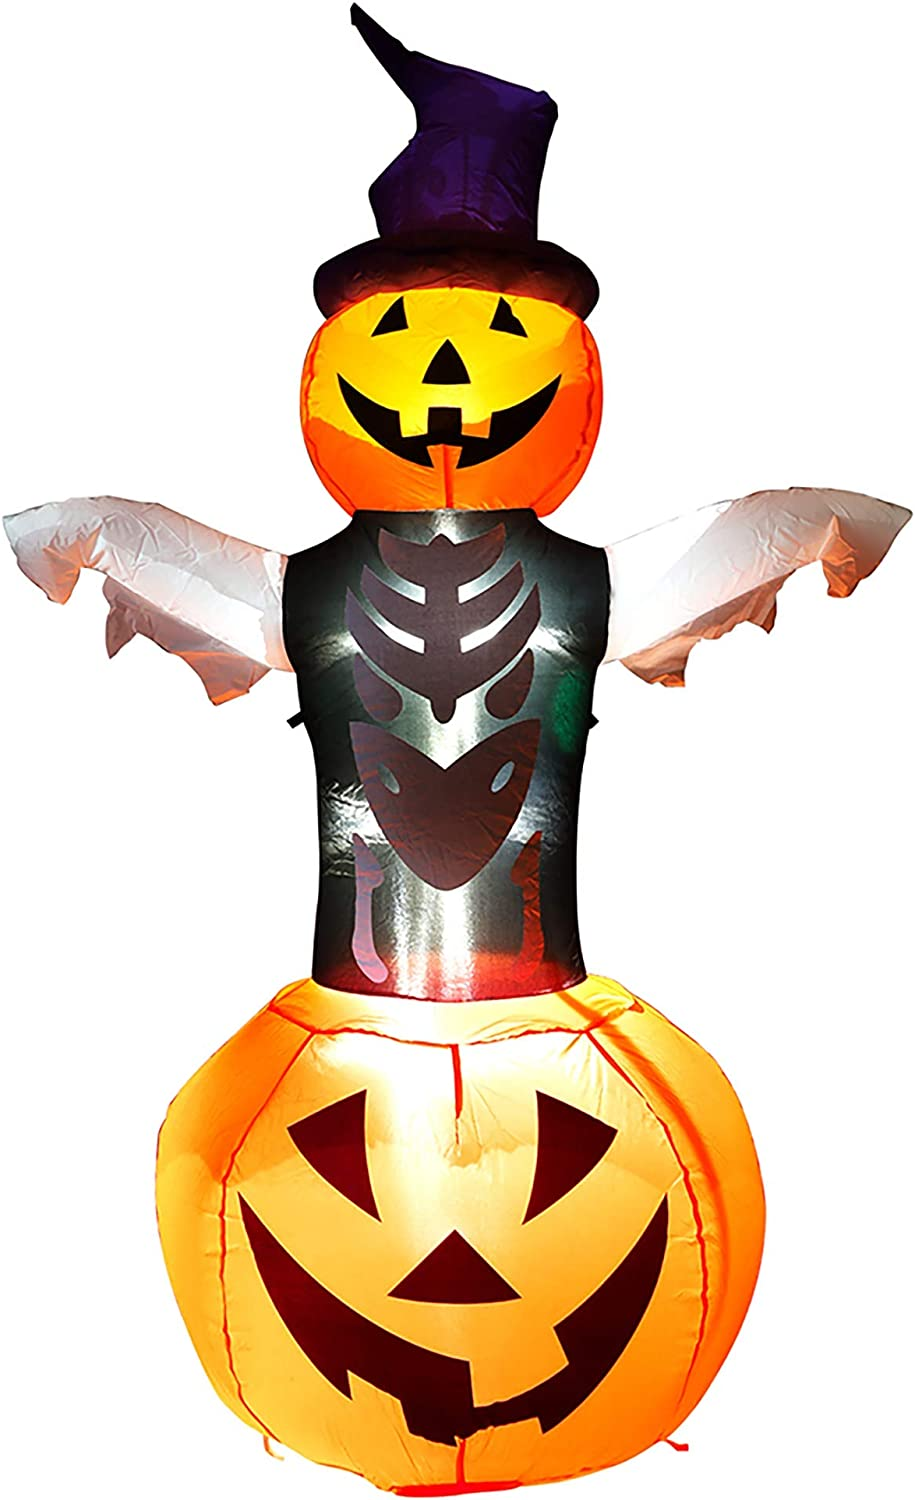 yofit 5 FT Halloween Inflatable Ghost Decoration, Airblow Lighted Yard Garden Decor with Bright LED Lights for Amusement Parks Restaurants Shopping Malls Halloween Decorations